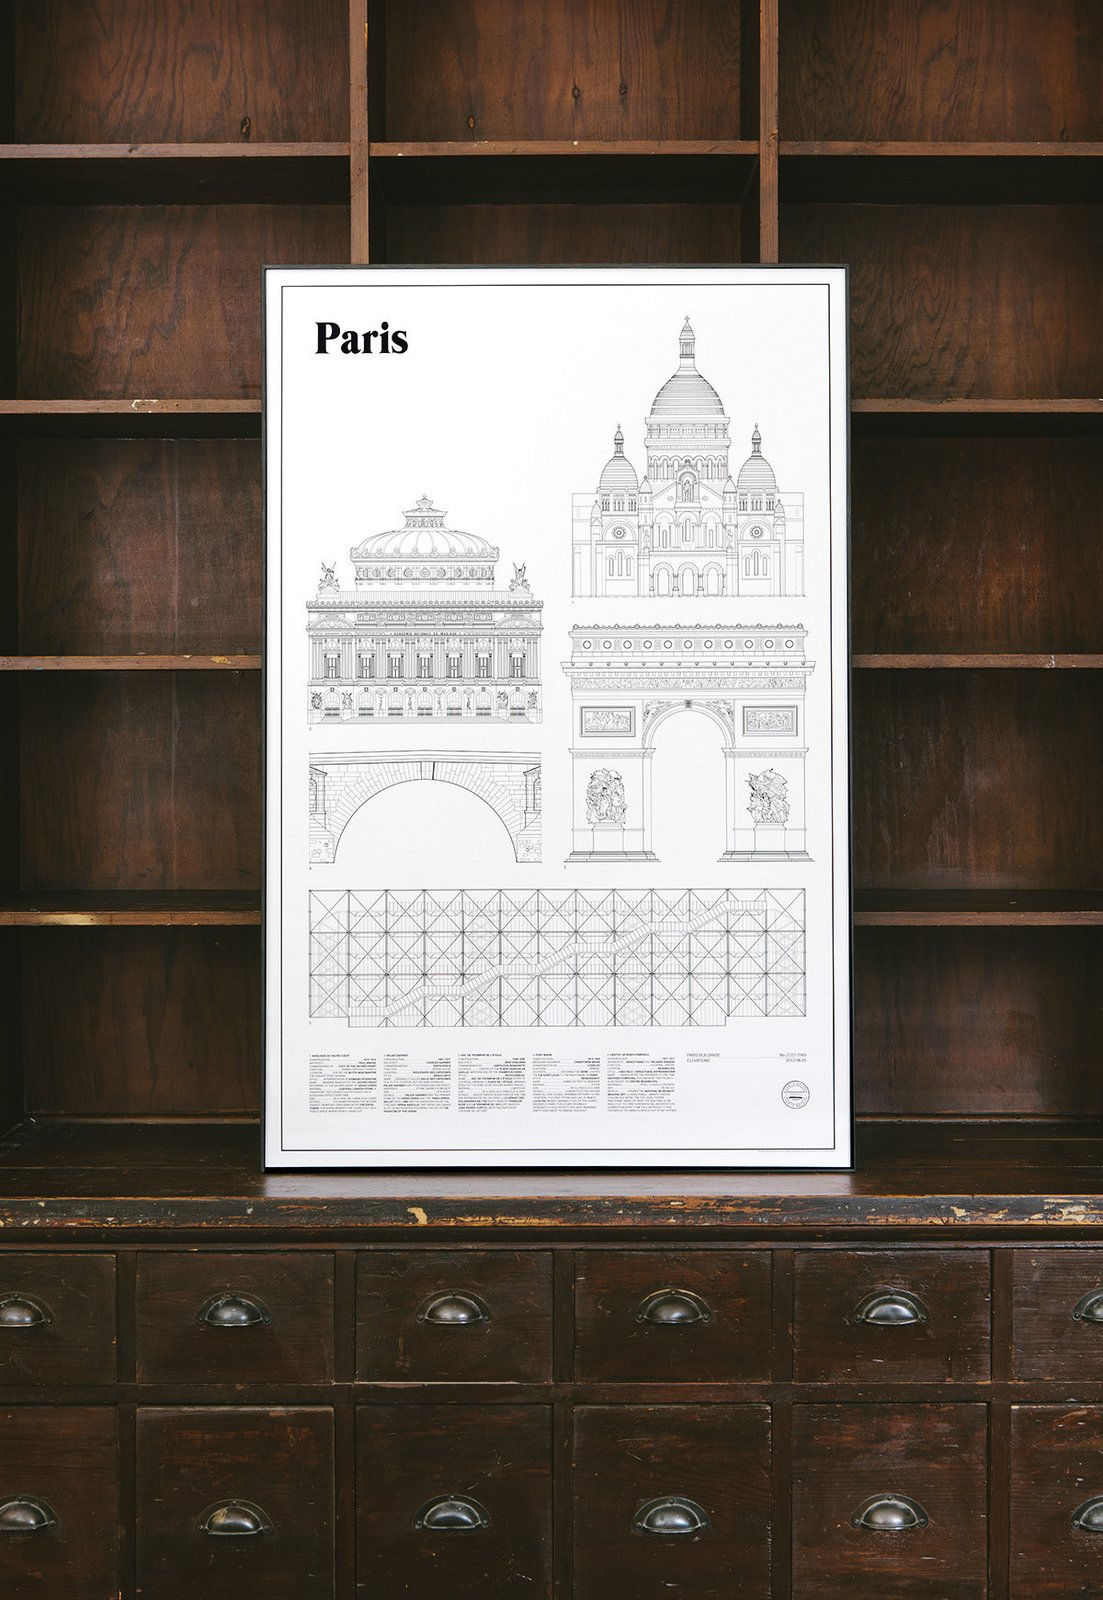 "The Elevations Architectural Print Series is a thoughtful collection of portraits of famous international cities. In architectural drawings, elevations are flat representations of the façade of a building, showing a complete view of one building's side. At the bottom of each Elevations Print, studio esinam includes details about each building pictured. The Paris Elevations Architectural Print includes architectural drawings of five buildings—Sacré-Cœur, Palais Garnier, Arc de Triomphe, Pont Marie, and Centre Georges Pompidou.  Search ""tokyo landmarks architectural print unframed"" from These Limited-Editon Prints Capture Architectural Landmarks Around the World"